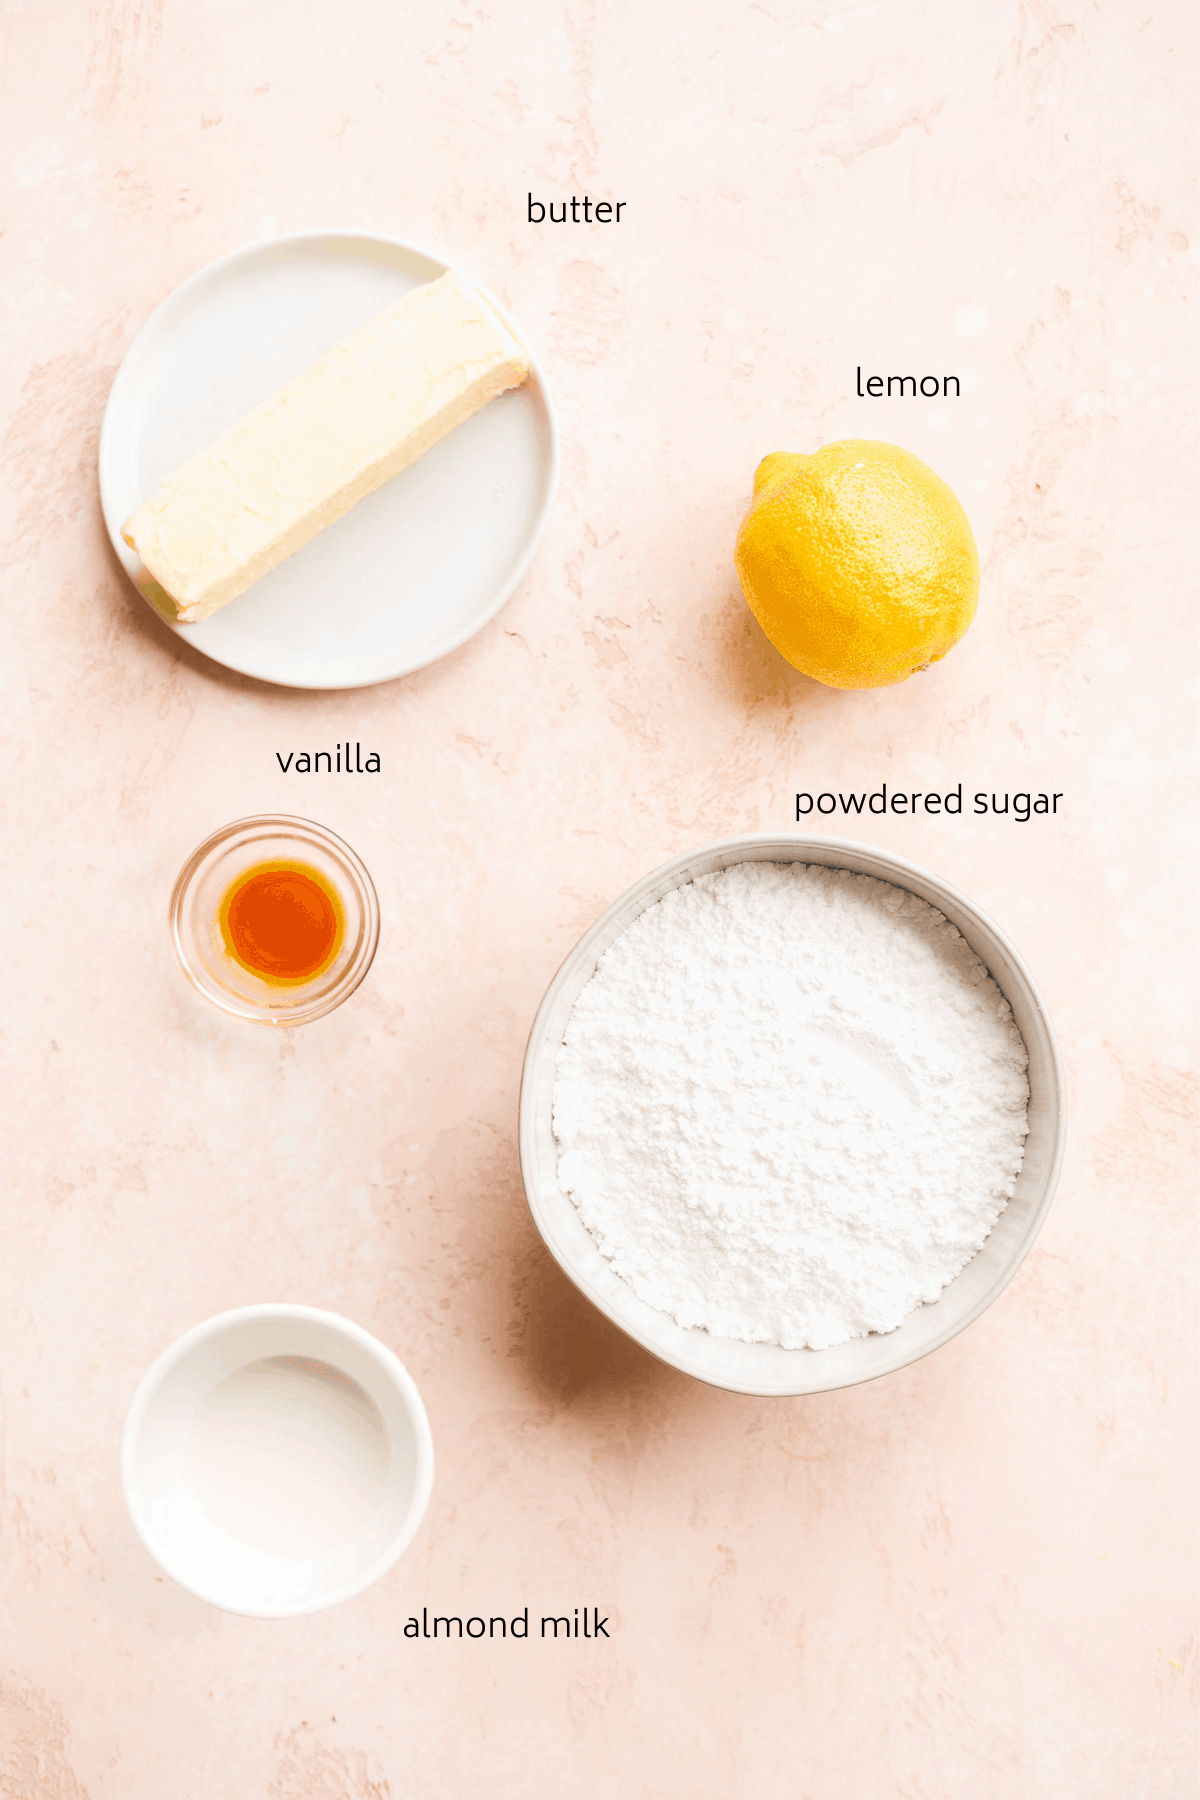 Icing ingredients labeled in black on a white surface.